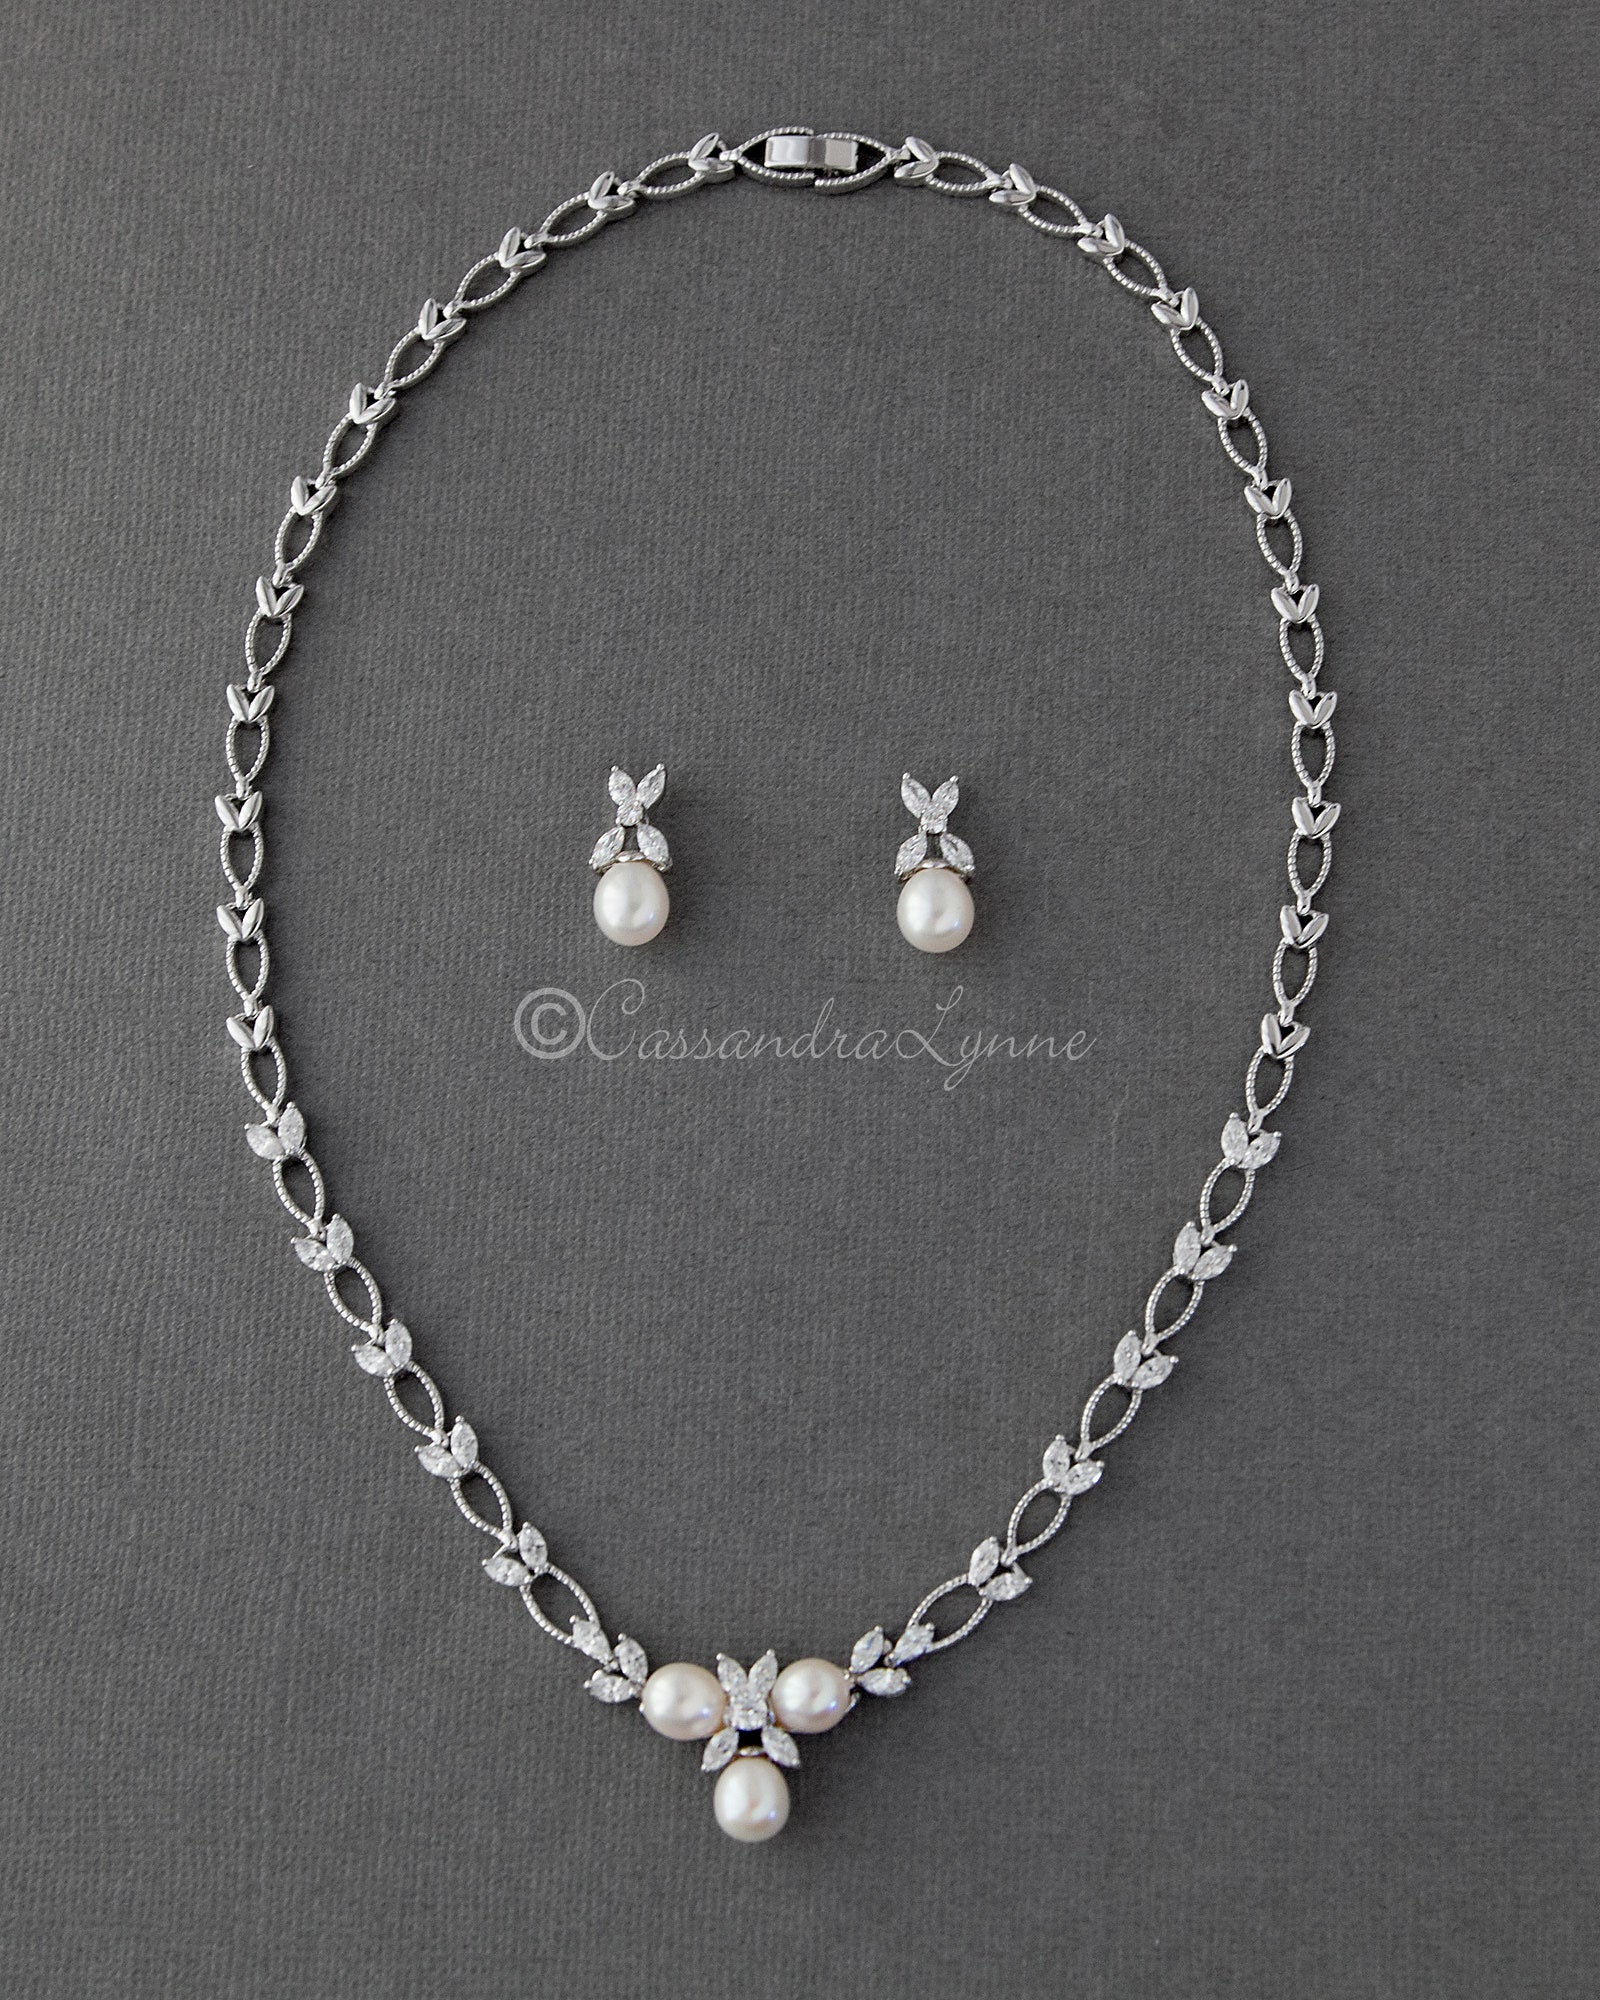 Pearl and Marquise Leaf Bridal Jewelry Necklace Set